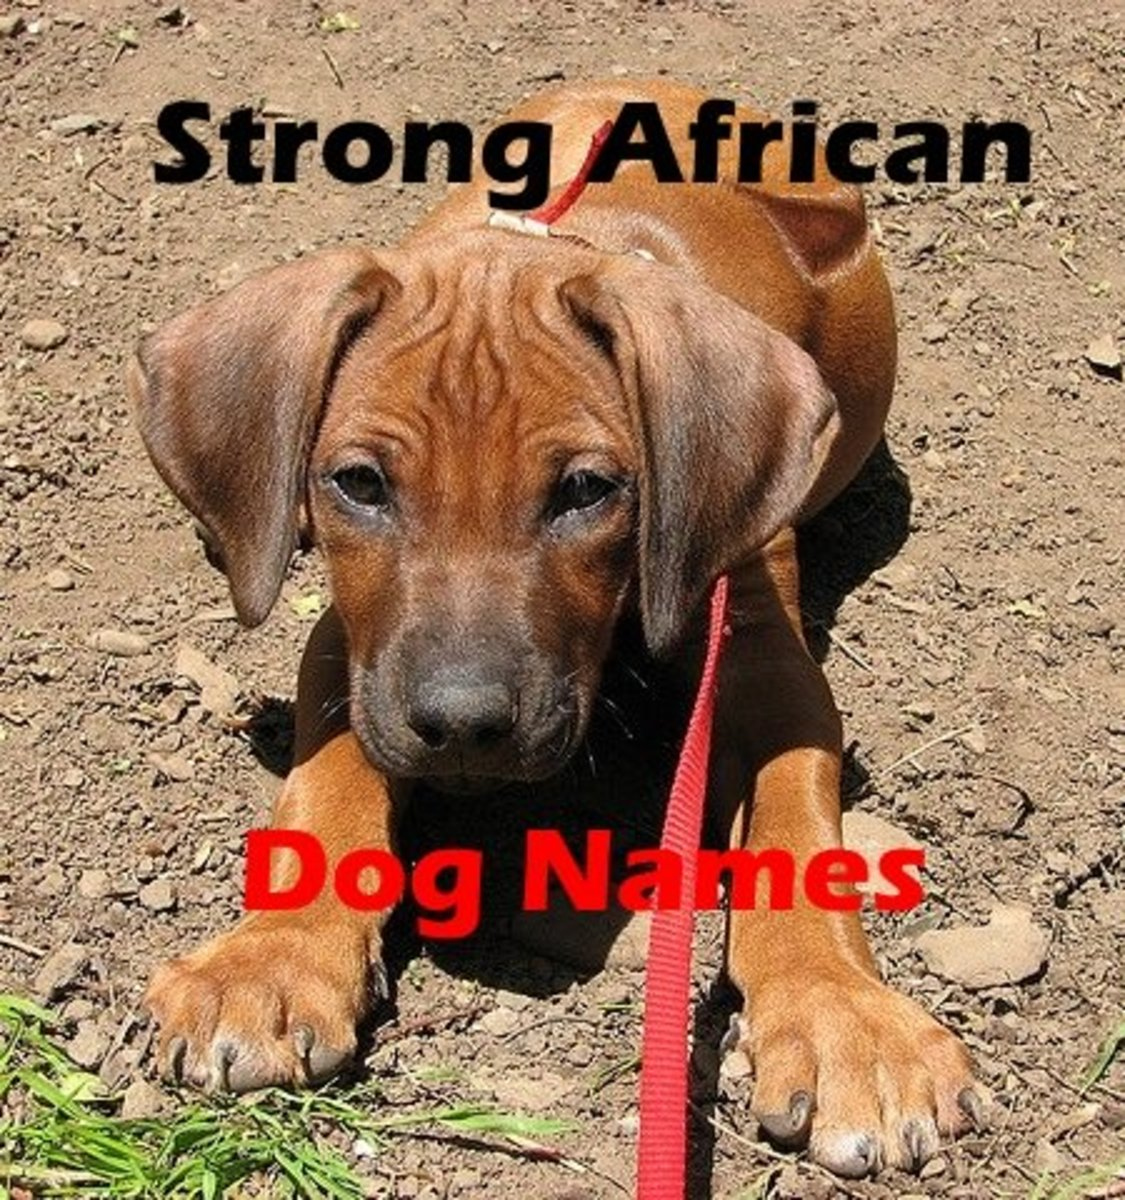 Strong African Dog Names for a Rhodesian Ridgeback (From Ata to Zula)